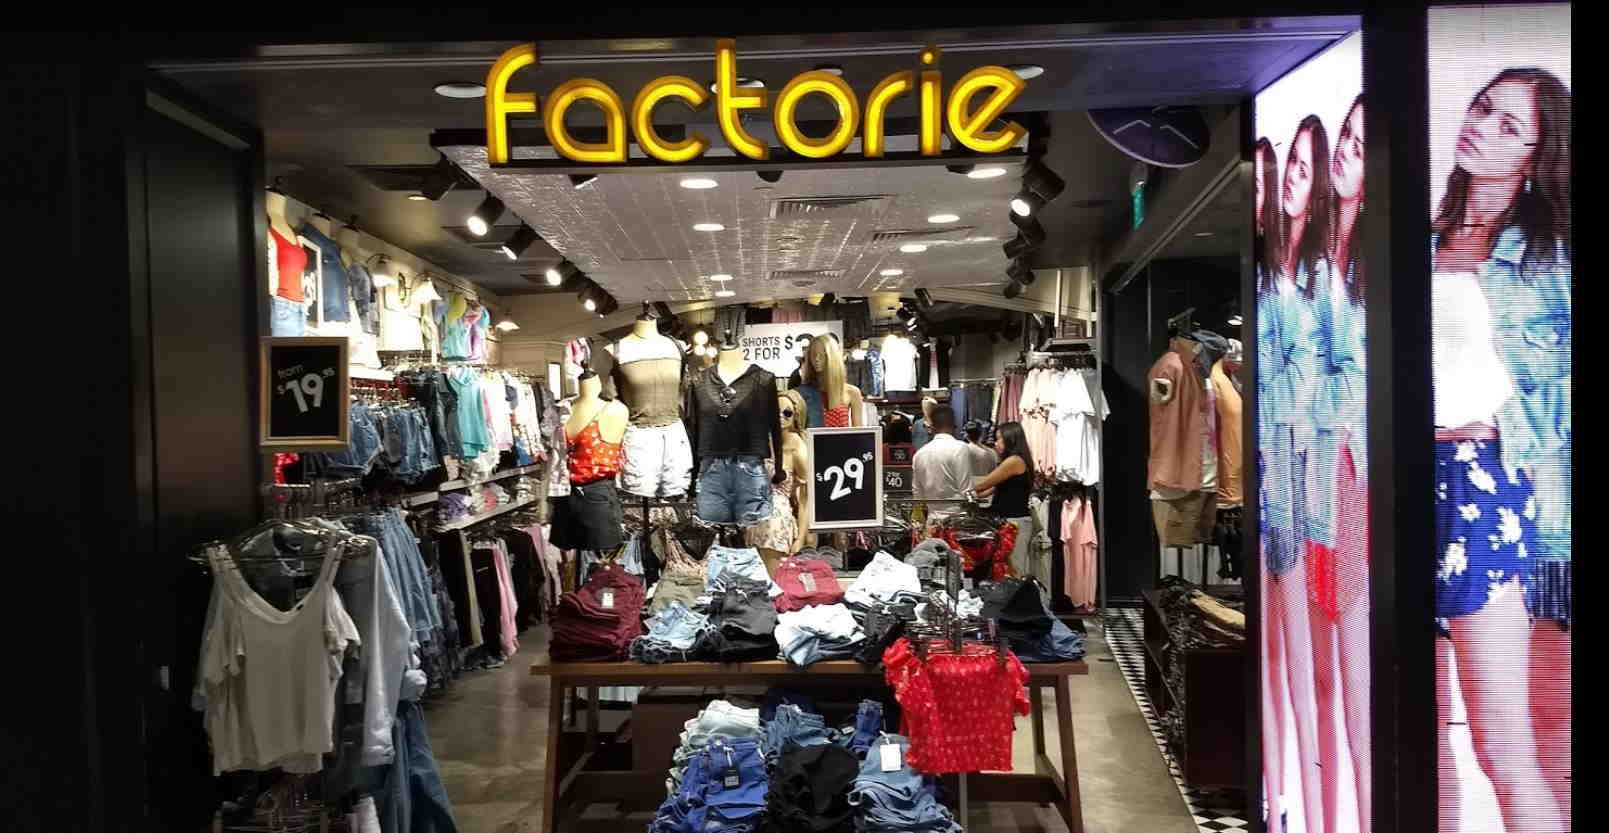 ff726f5762a Major fashion outlets youll never see again in singapore jpg 1609x833  Factorie clothing 2018